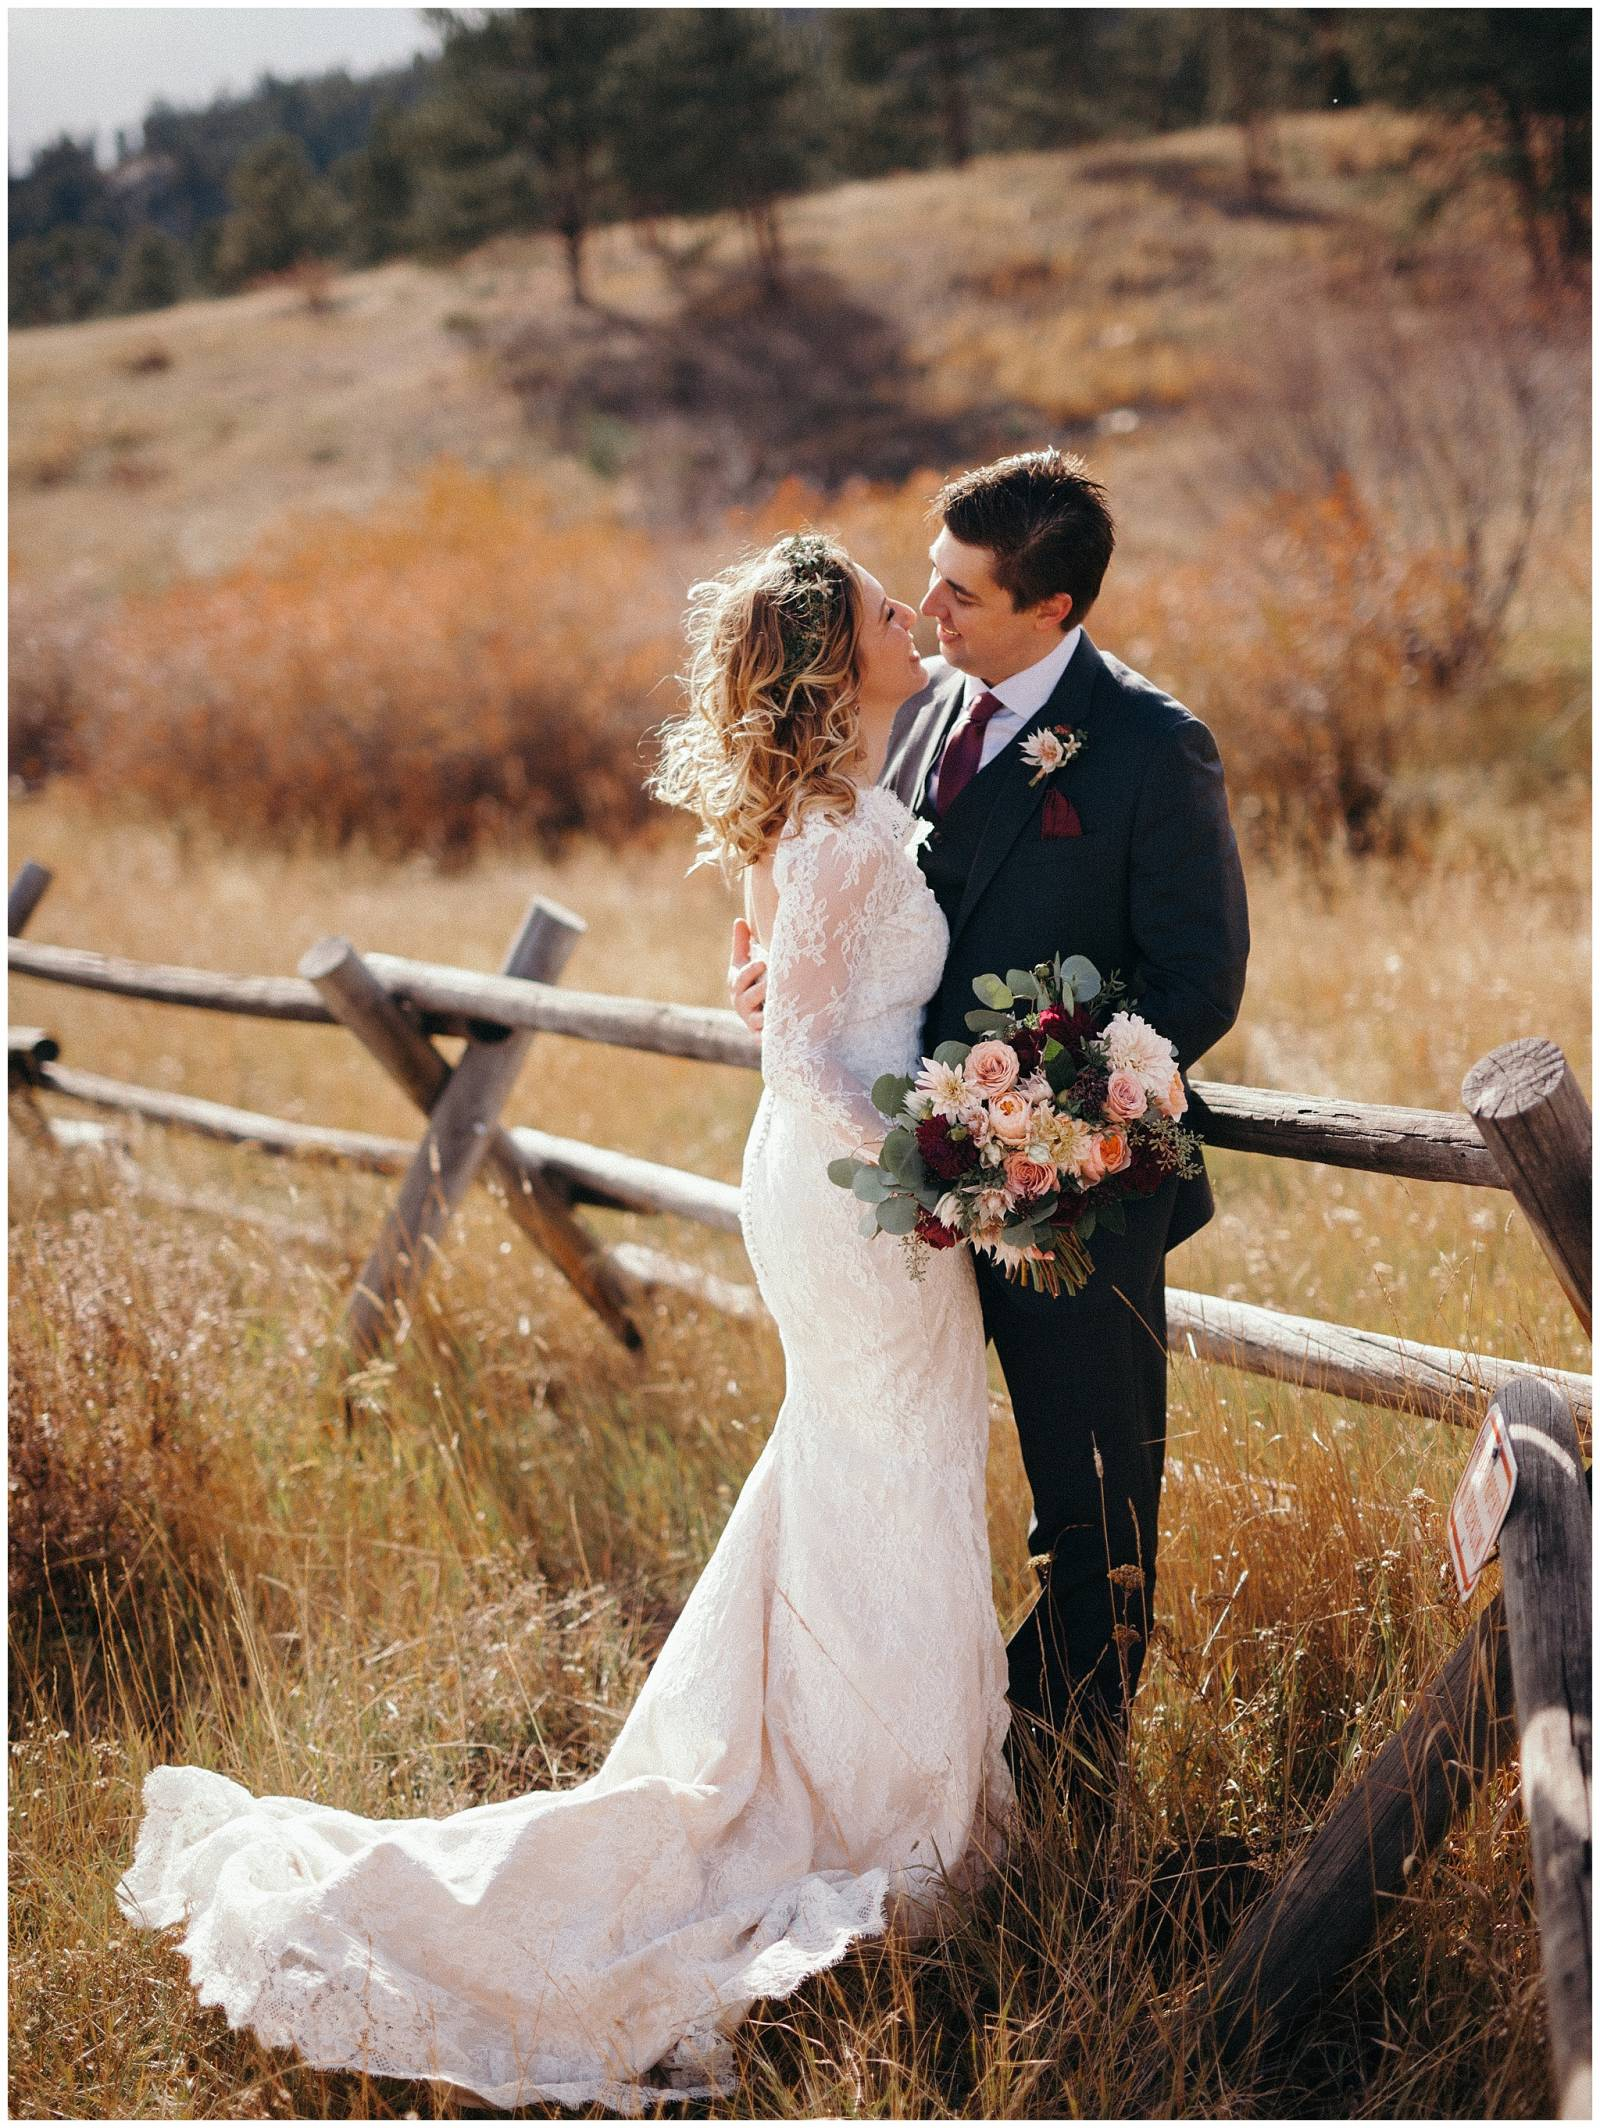 Rocky Mountain Colorado field wedding planned by root + gather events